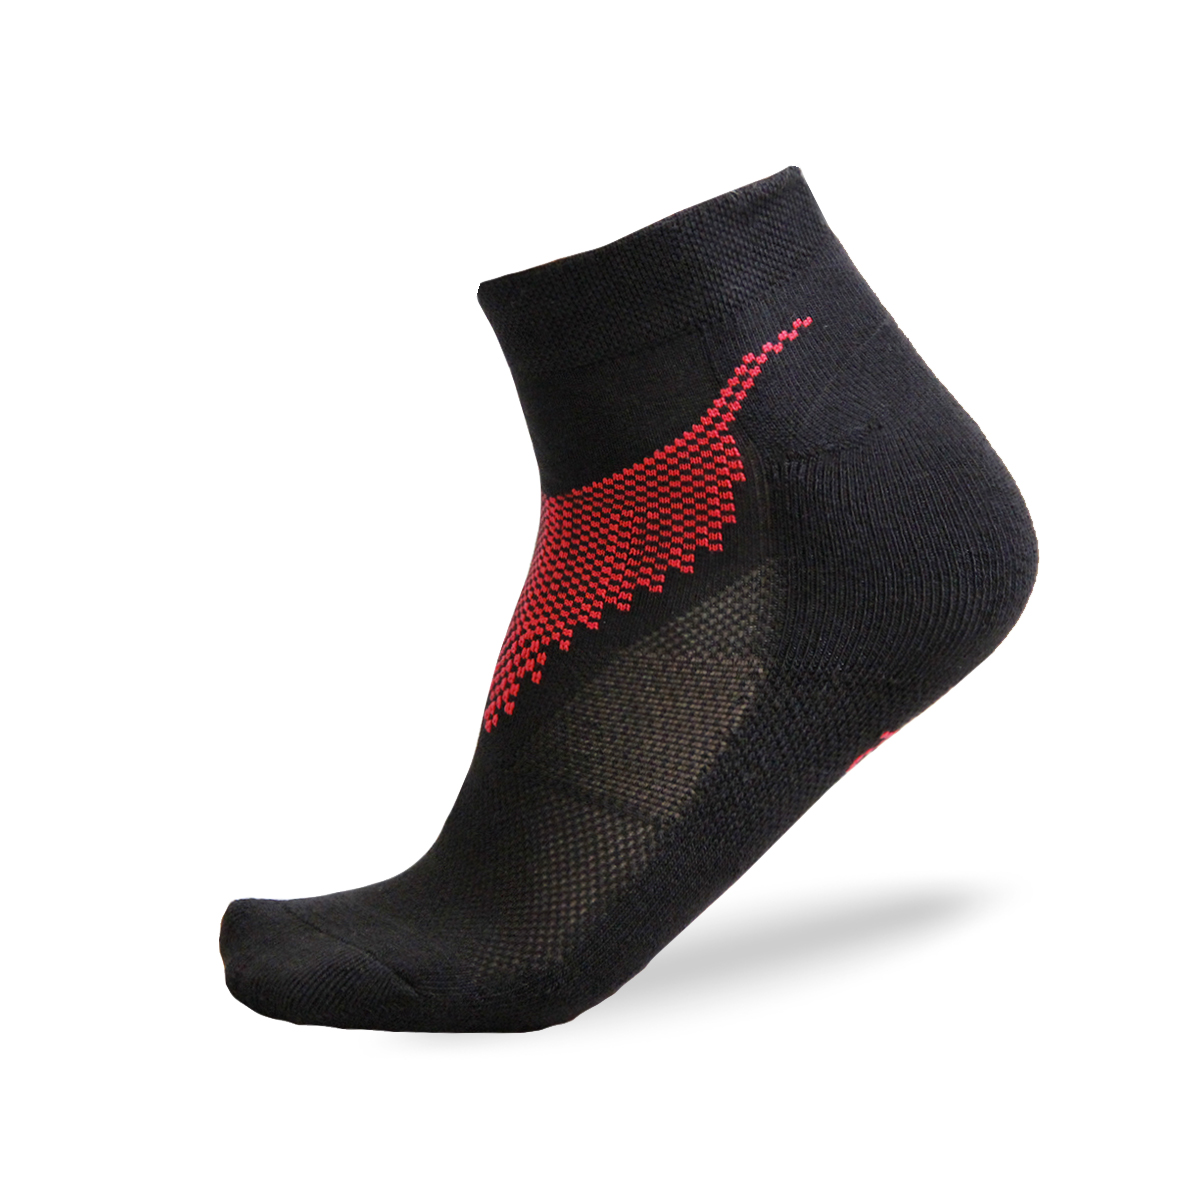 FREEZ ANCLE SPORT SOCKS black 43-46